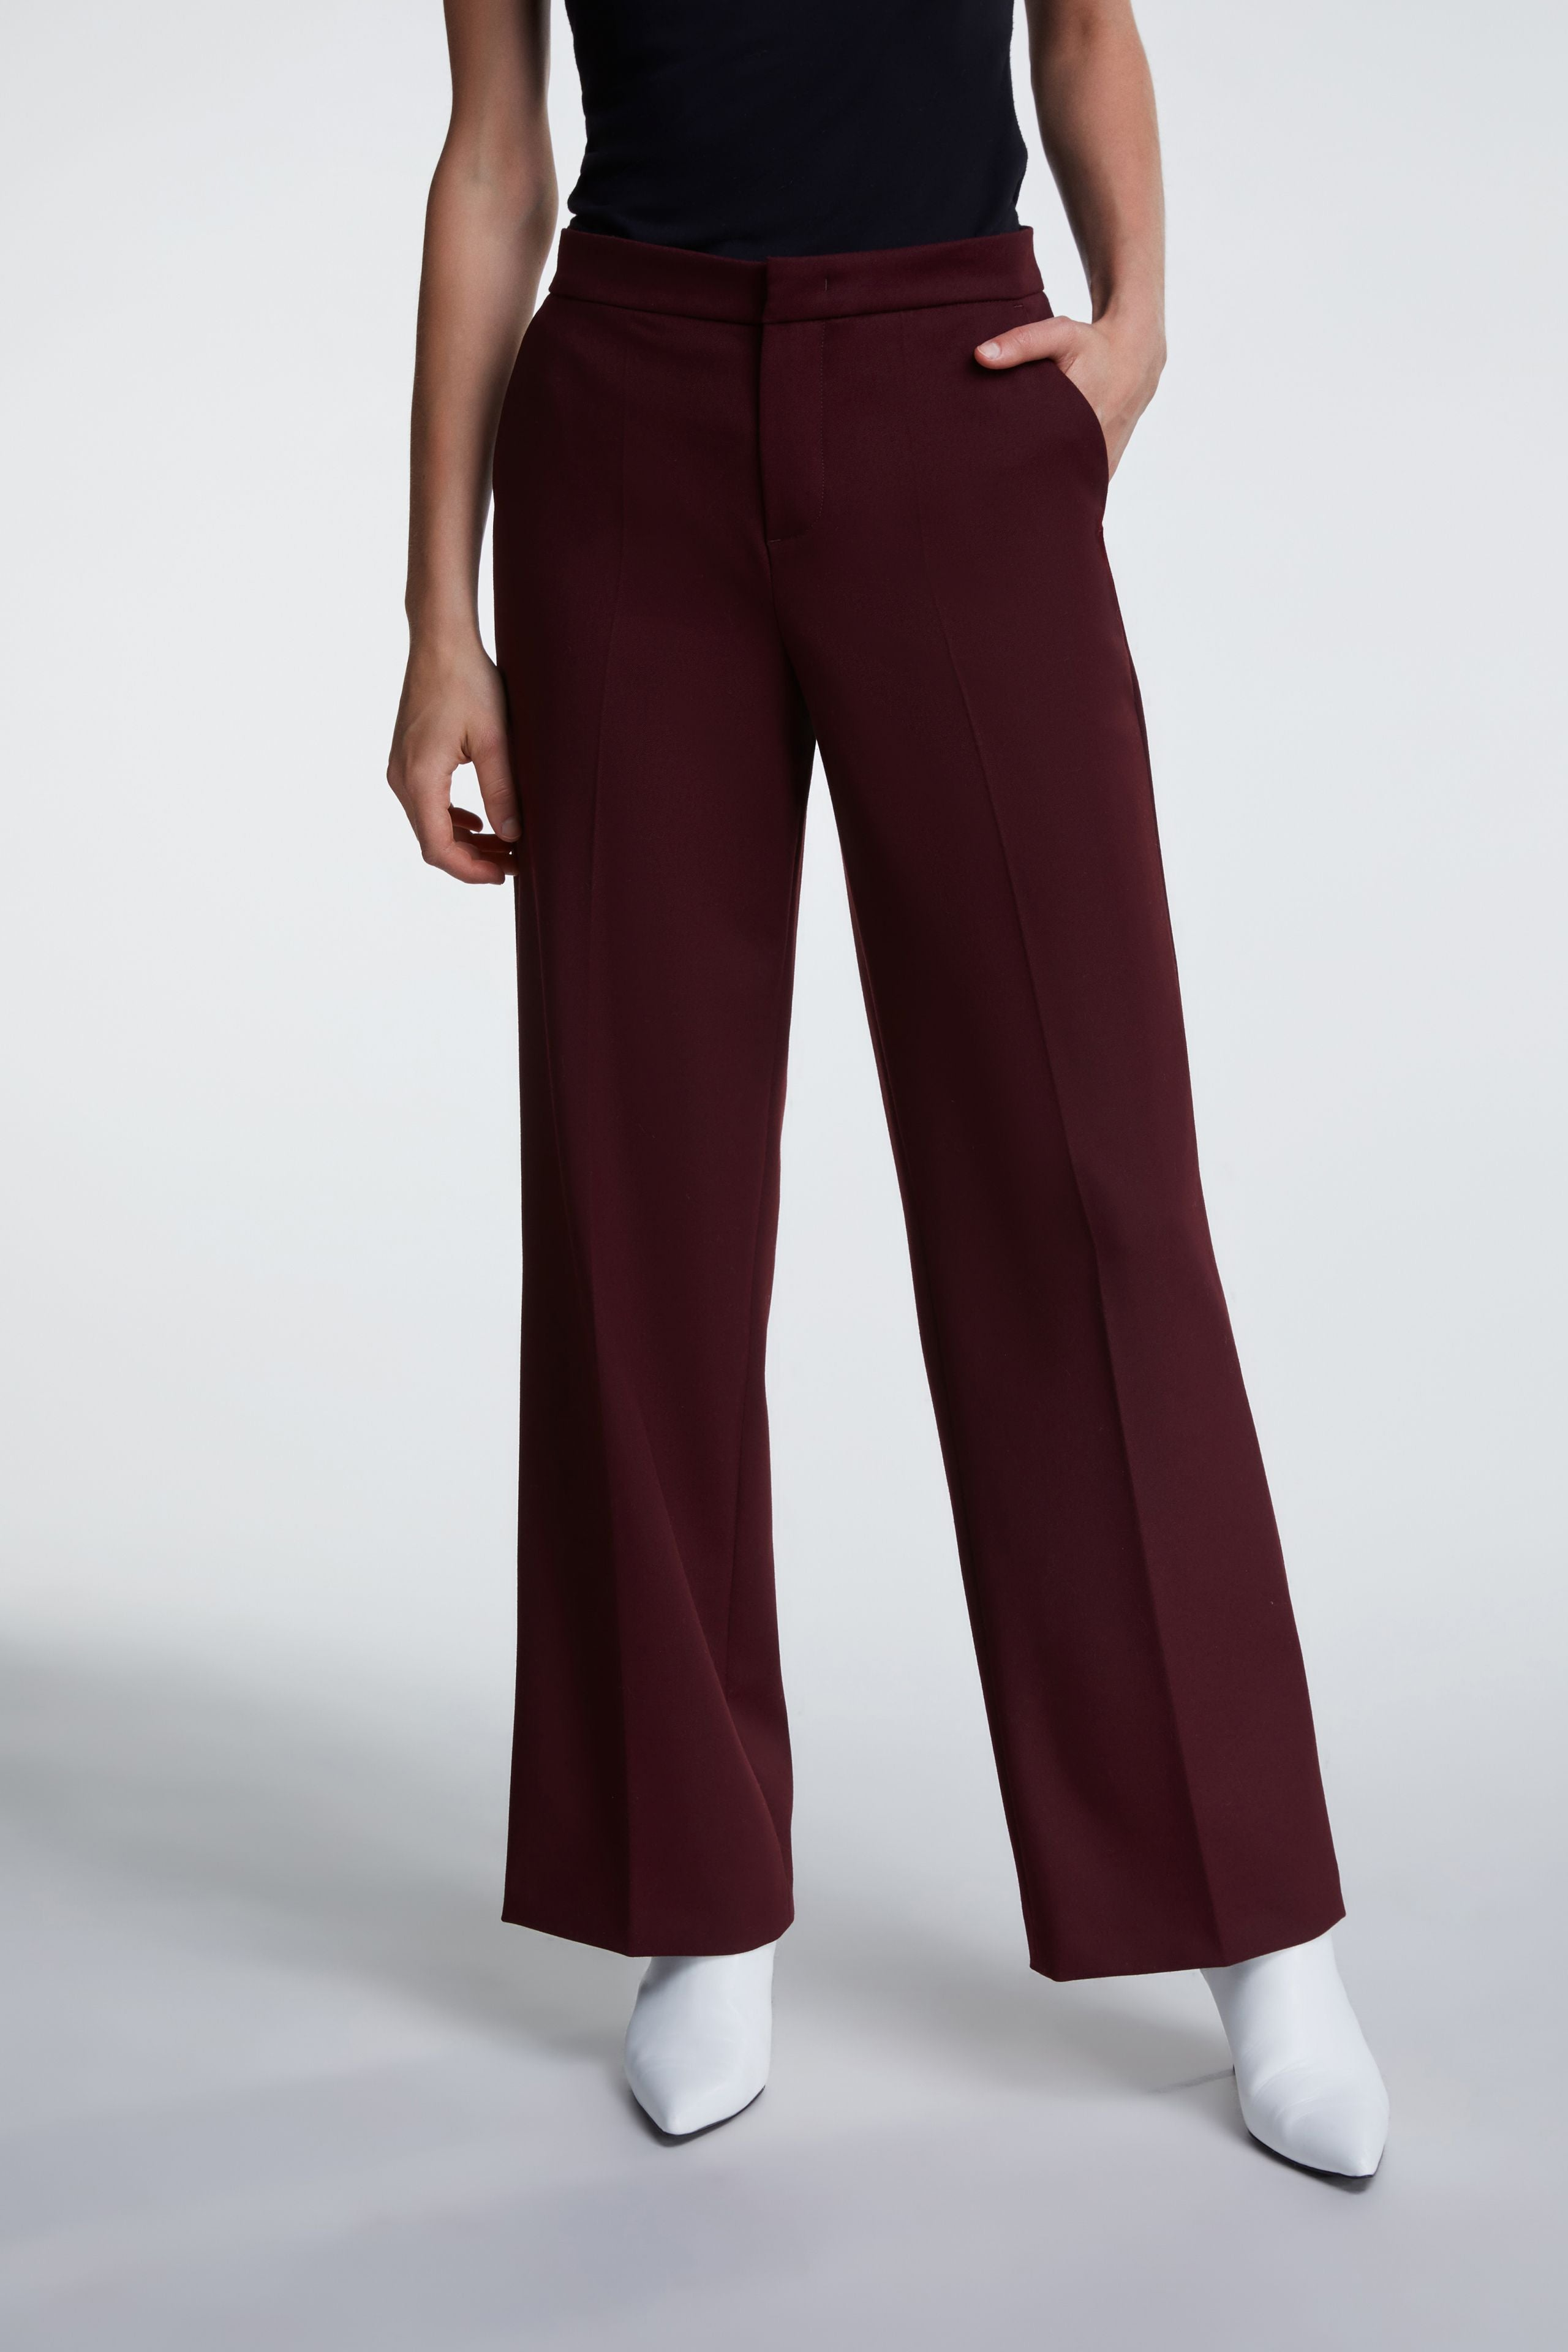 Buy wide leg trousers from Damsel Boutique in Chiswick